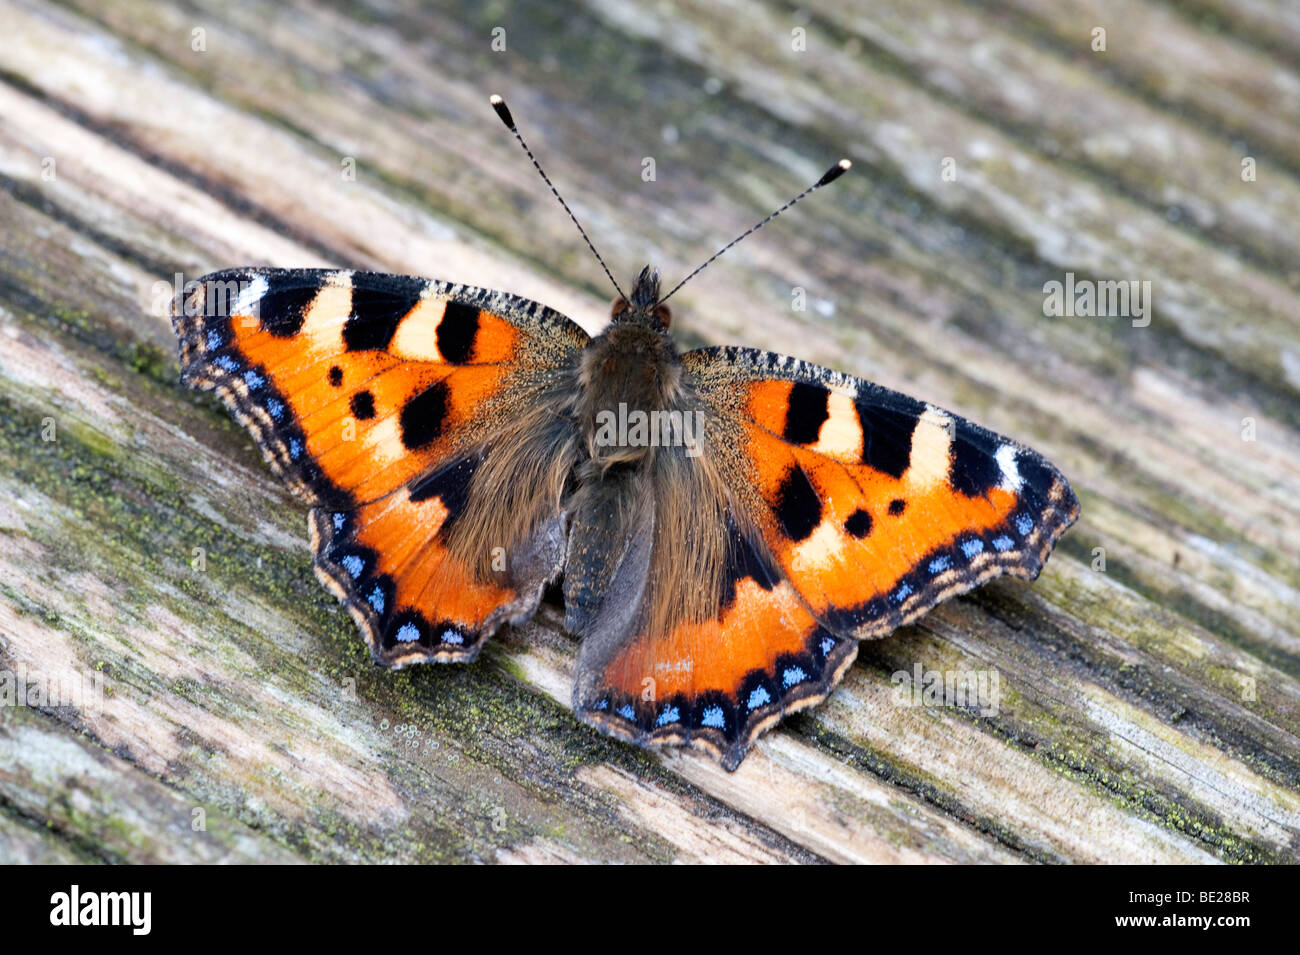 Small Tortoiseshell Butterfly Aglais urticae resting with wings open on garden decking - Stock Image